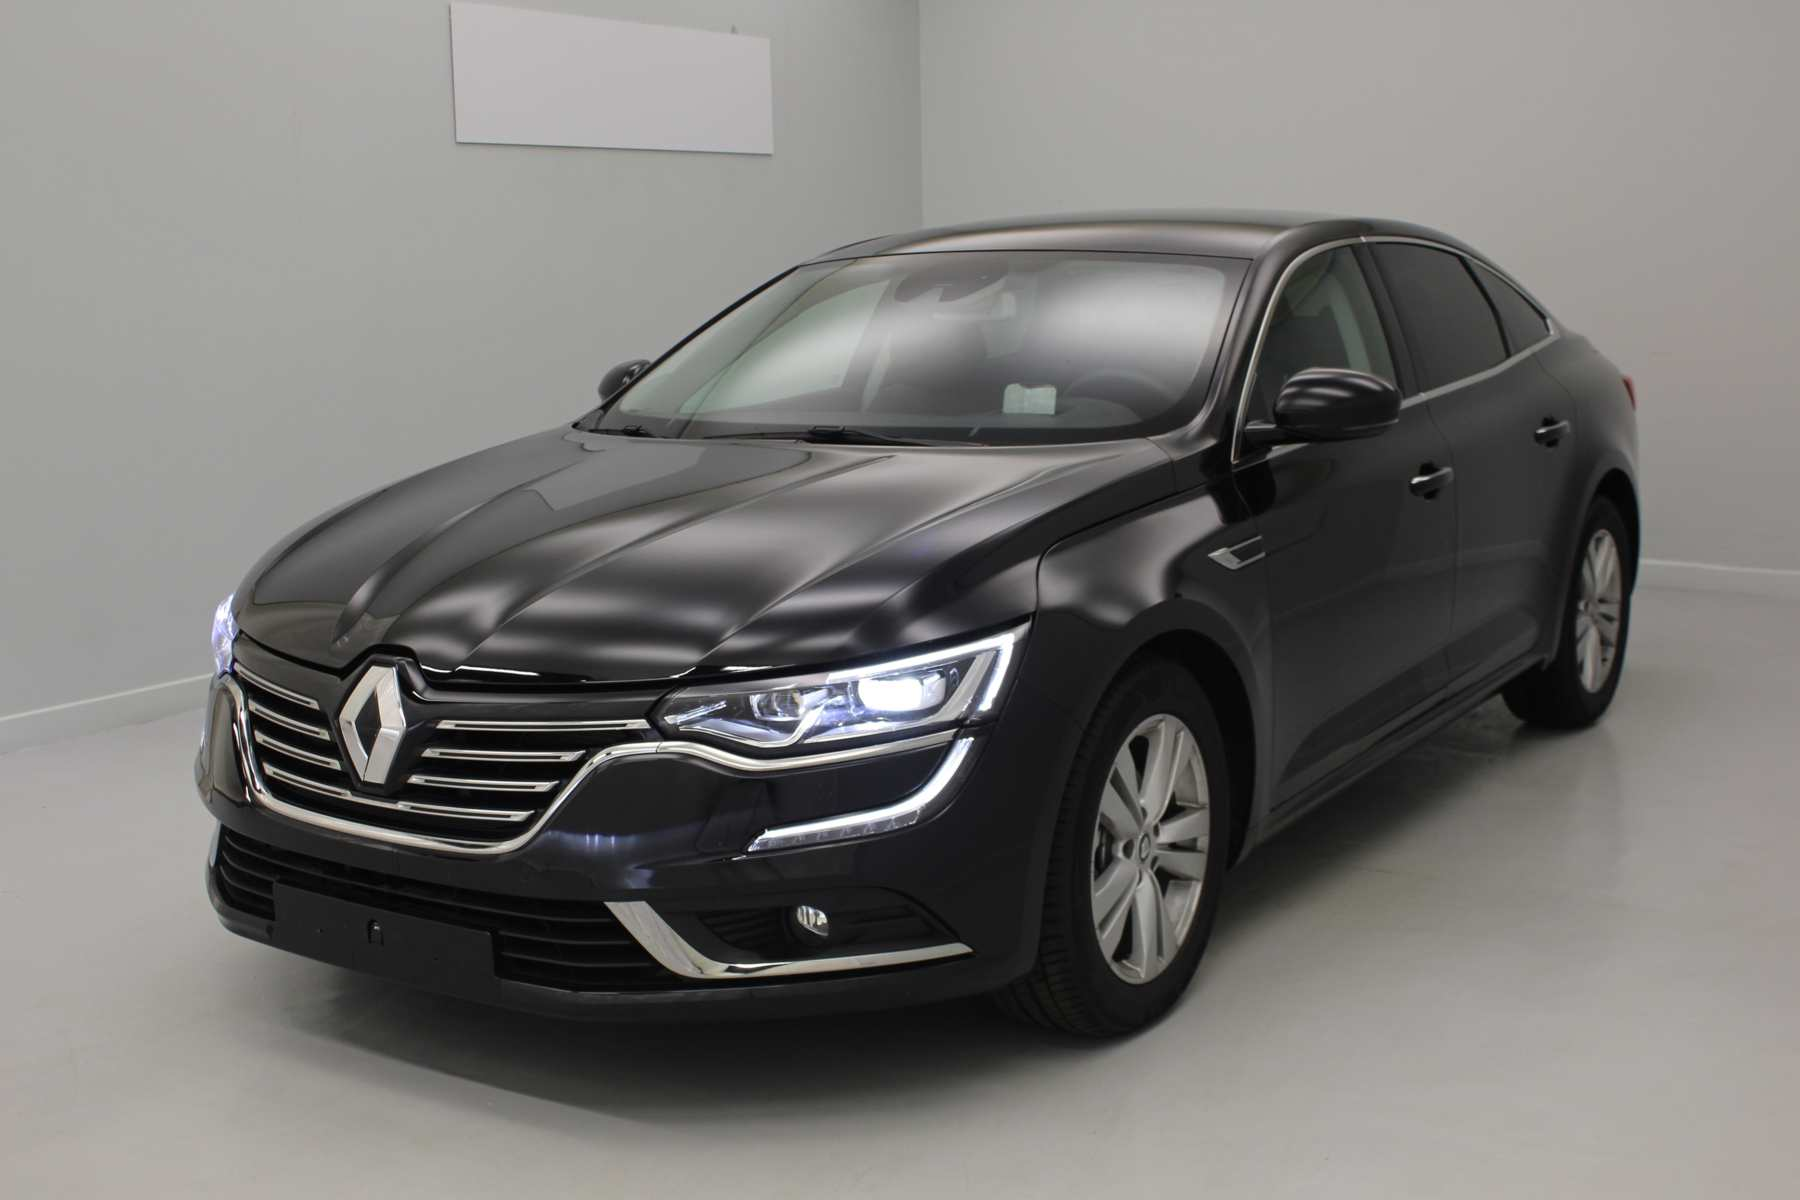 RENAULT Talisman dCi 130 Energy Intens Noir Etoilé + Pack Protection avec options